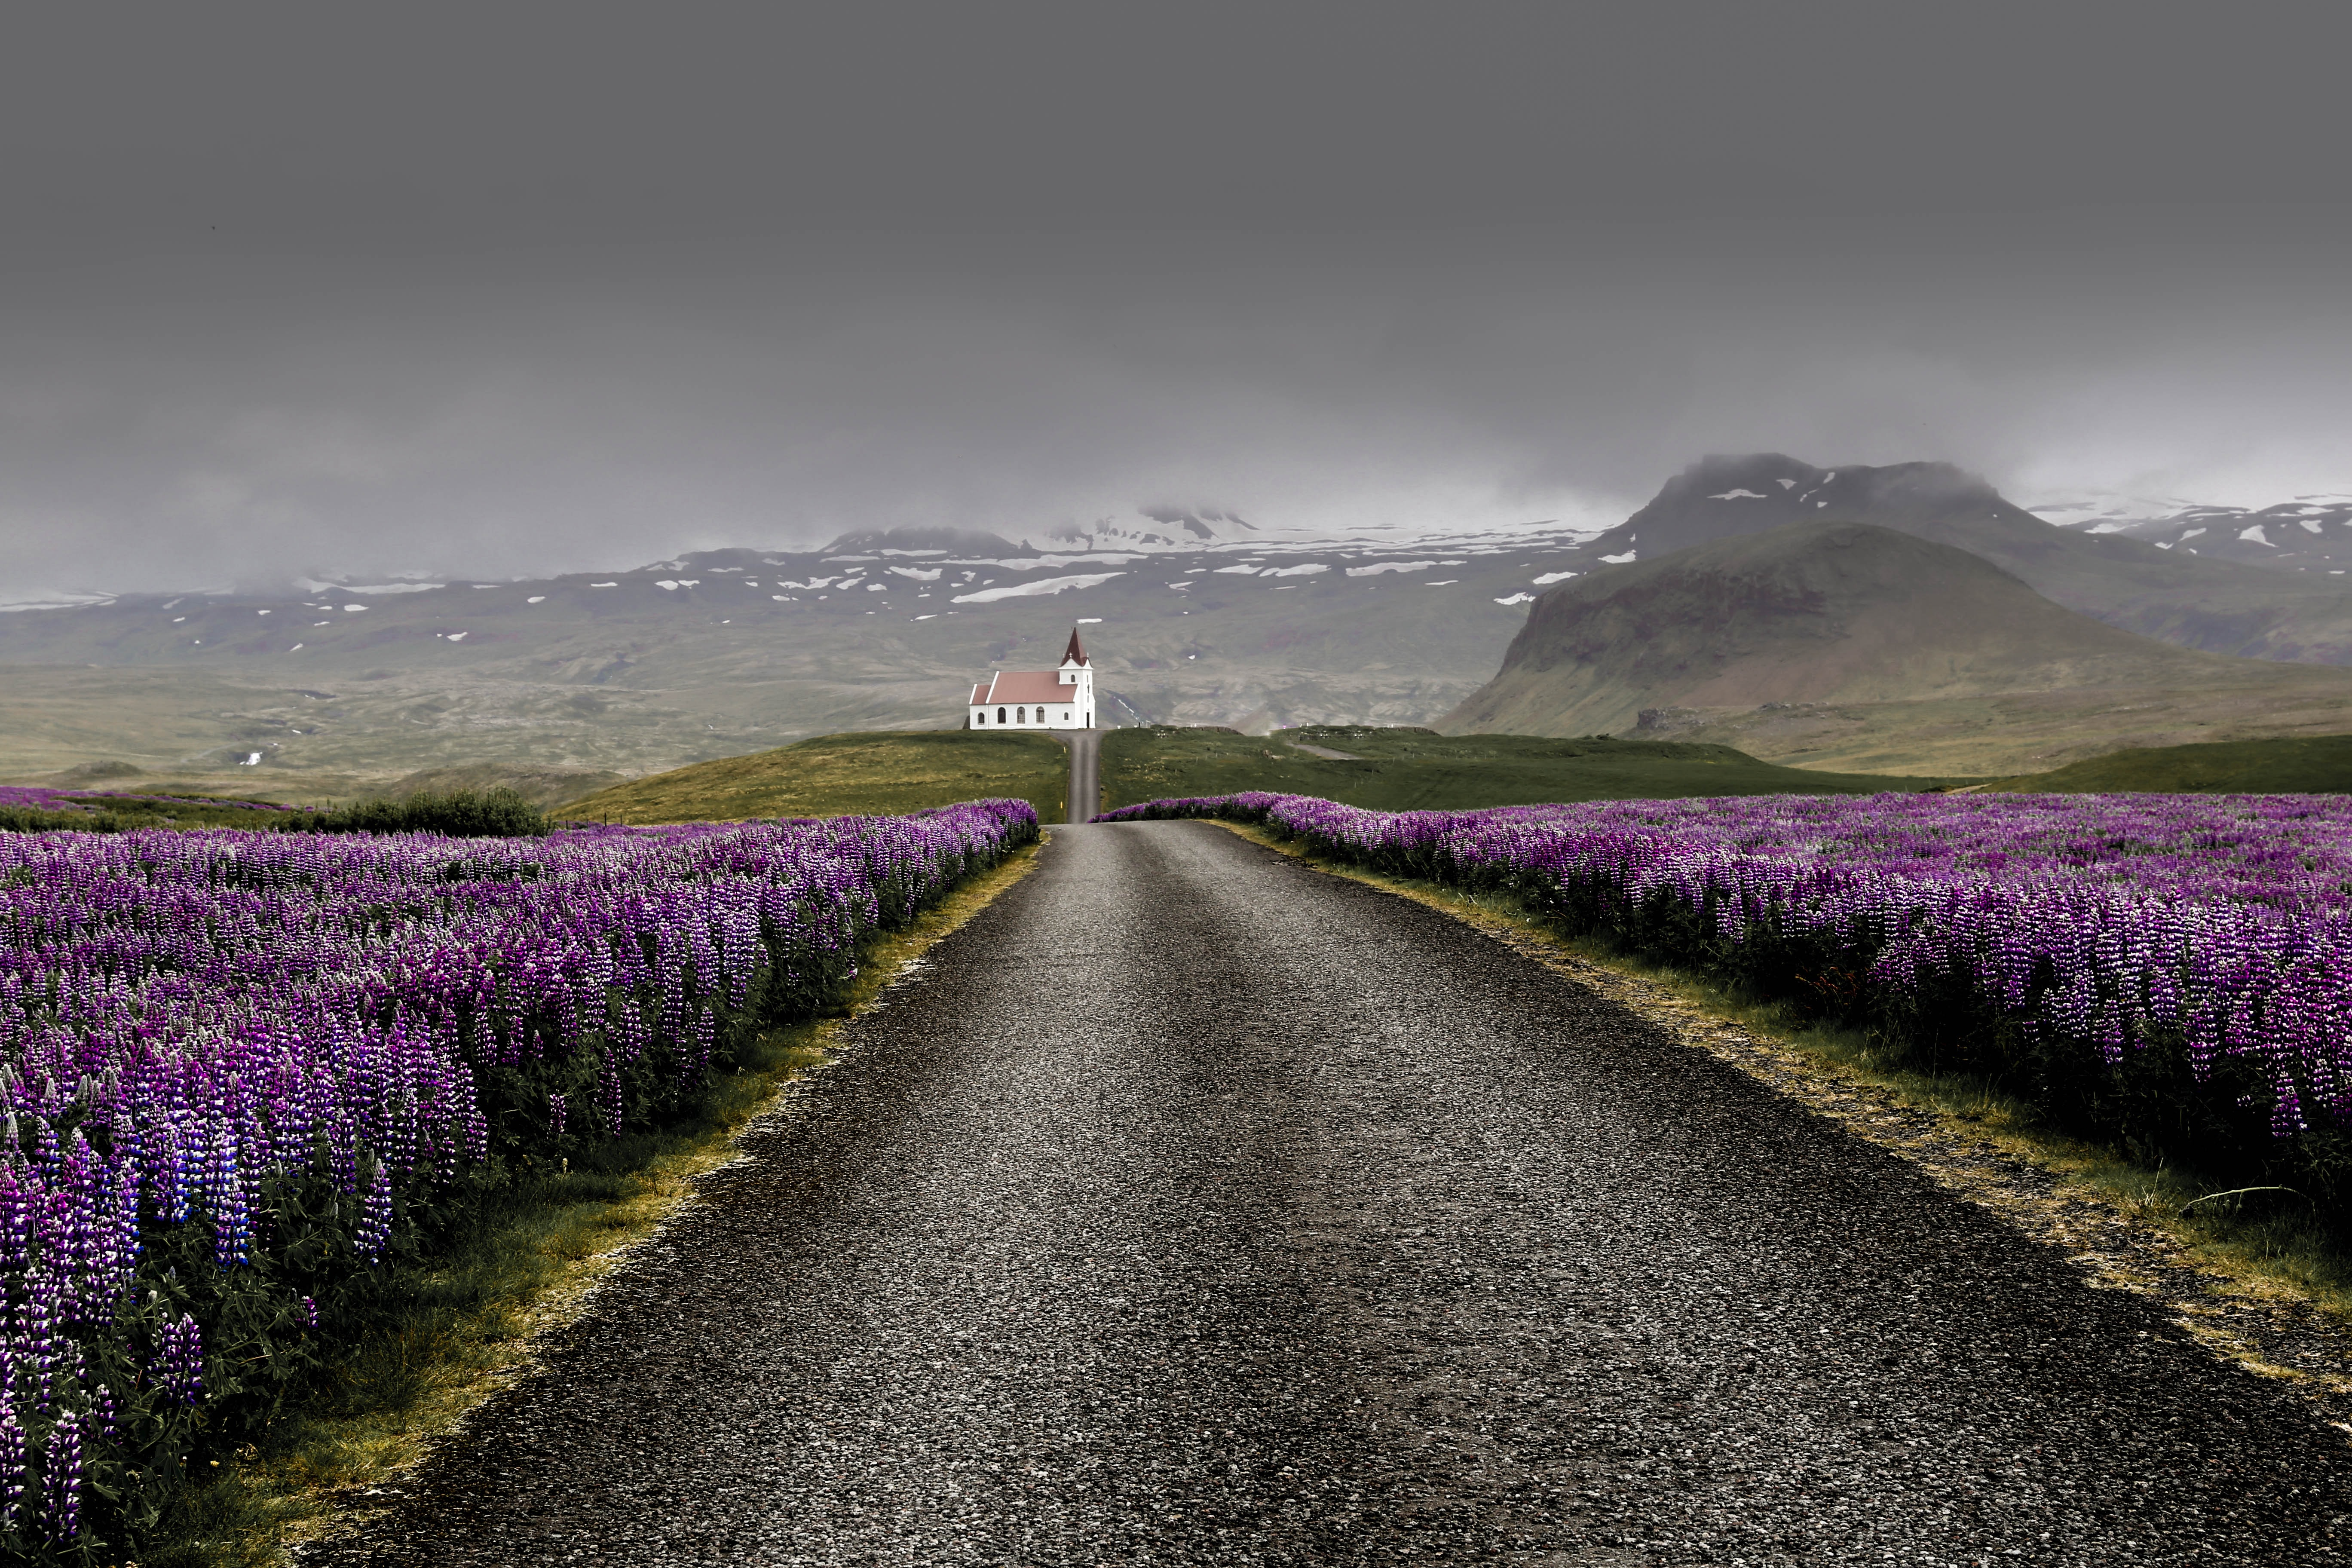 An asphalt road between fields of lupine in the mountains on a cloudy day